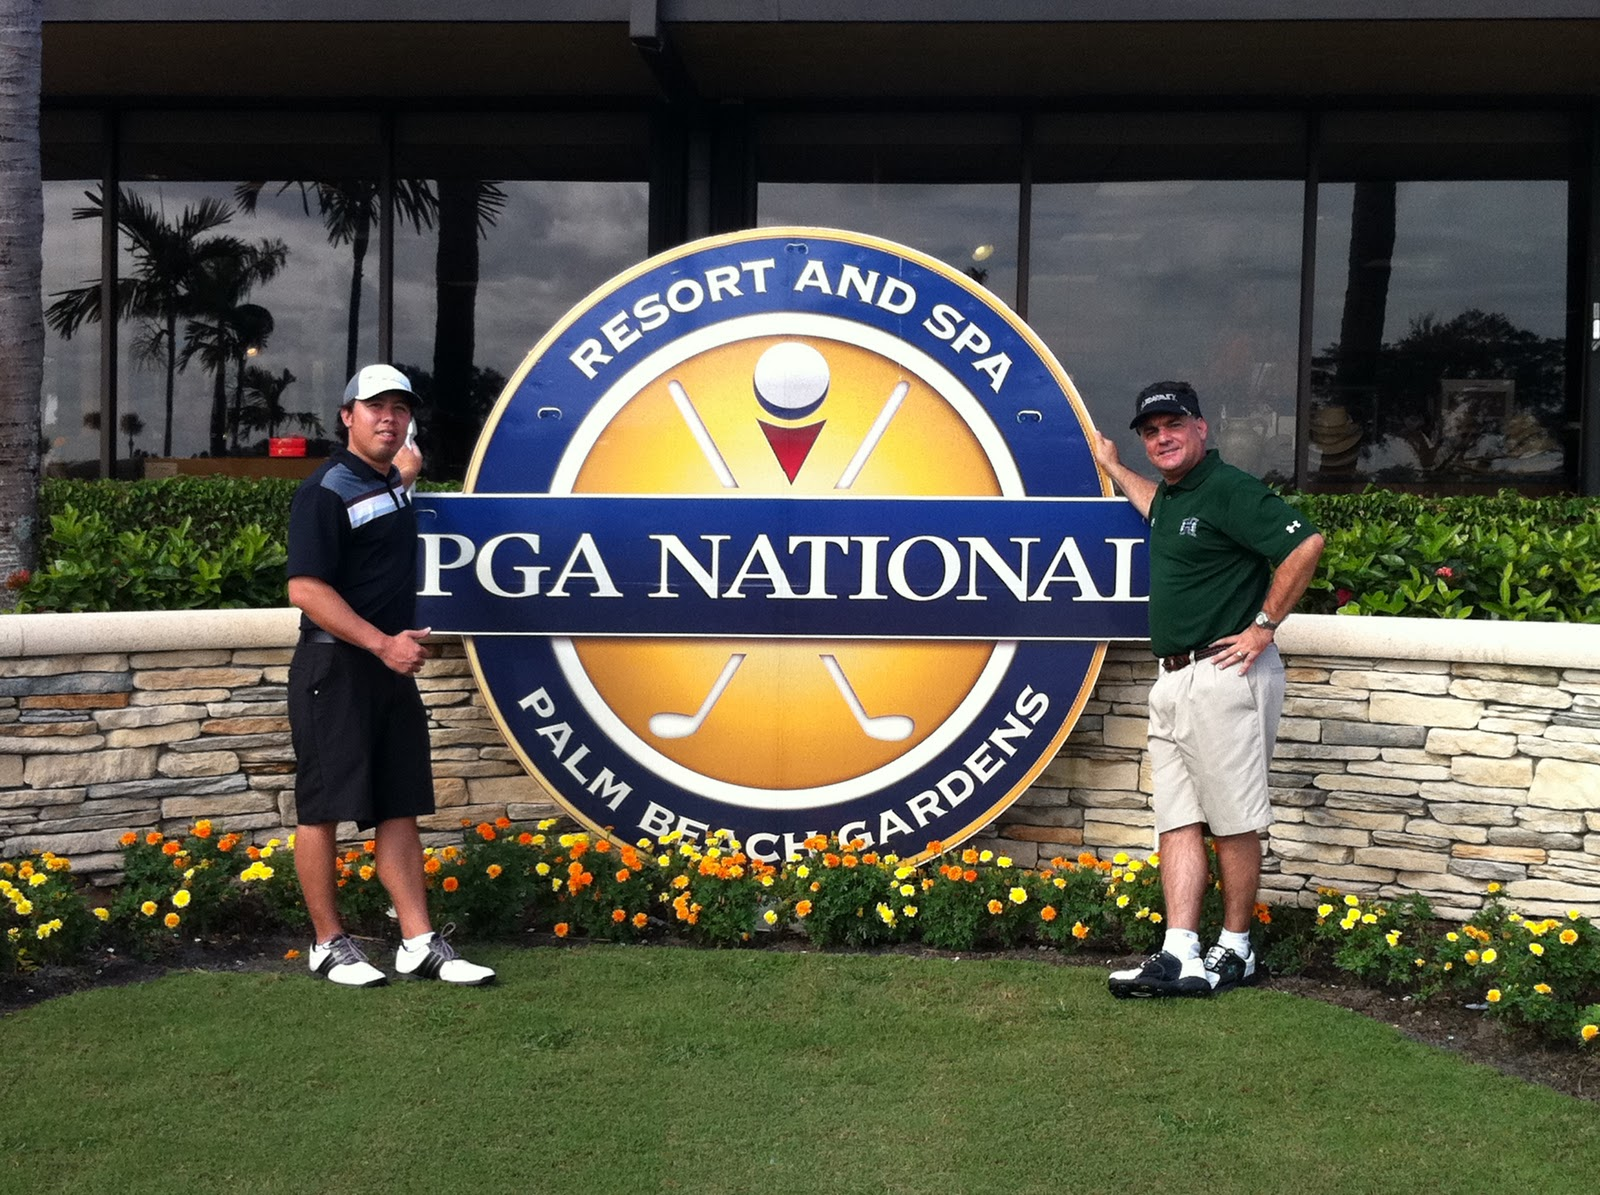 taste of hawaii pga national golf course palm beach florida